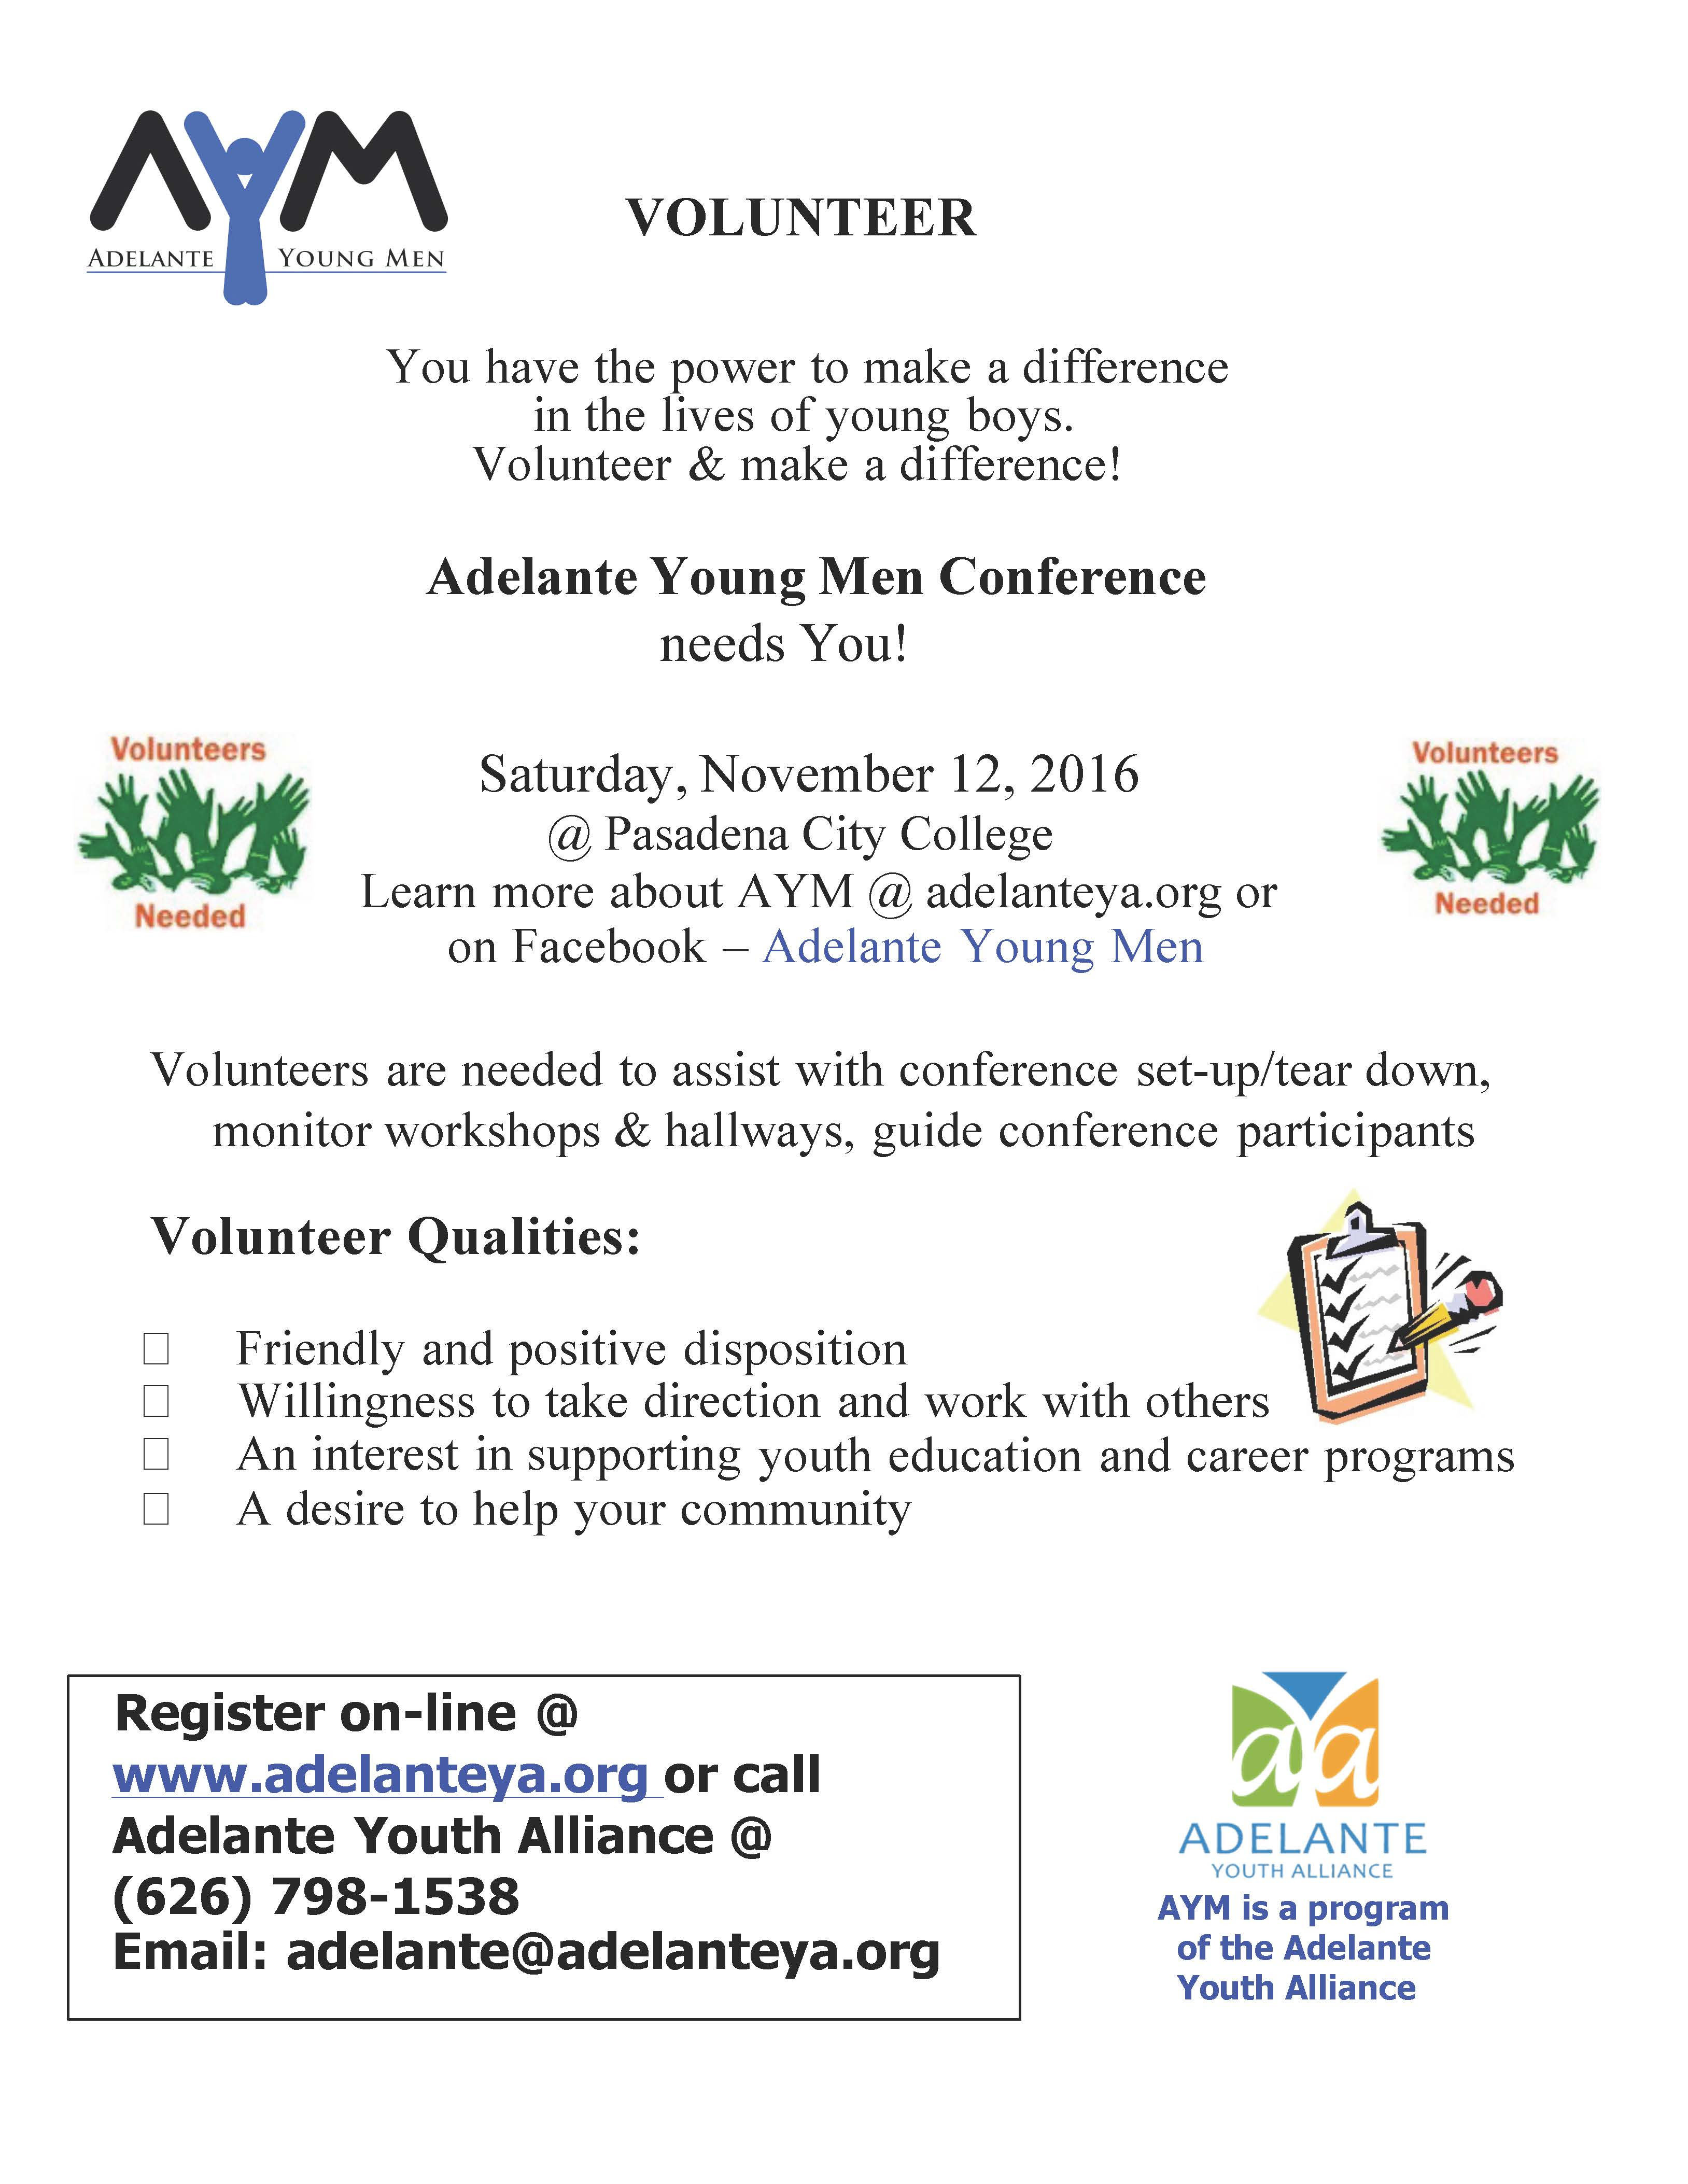 2016-AYM-Volunteer-flier.jpg